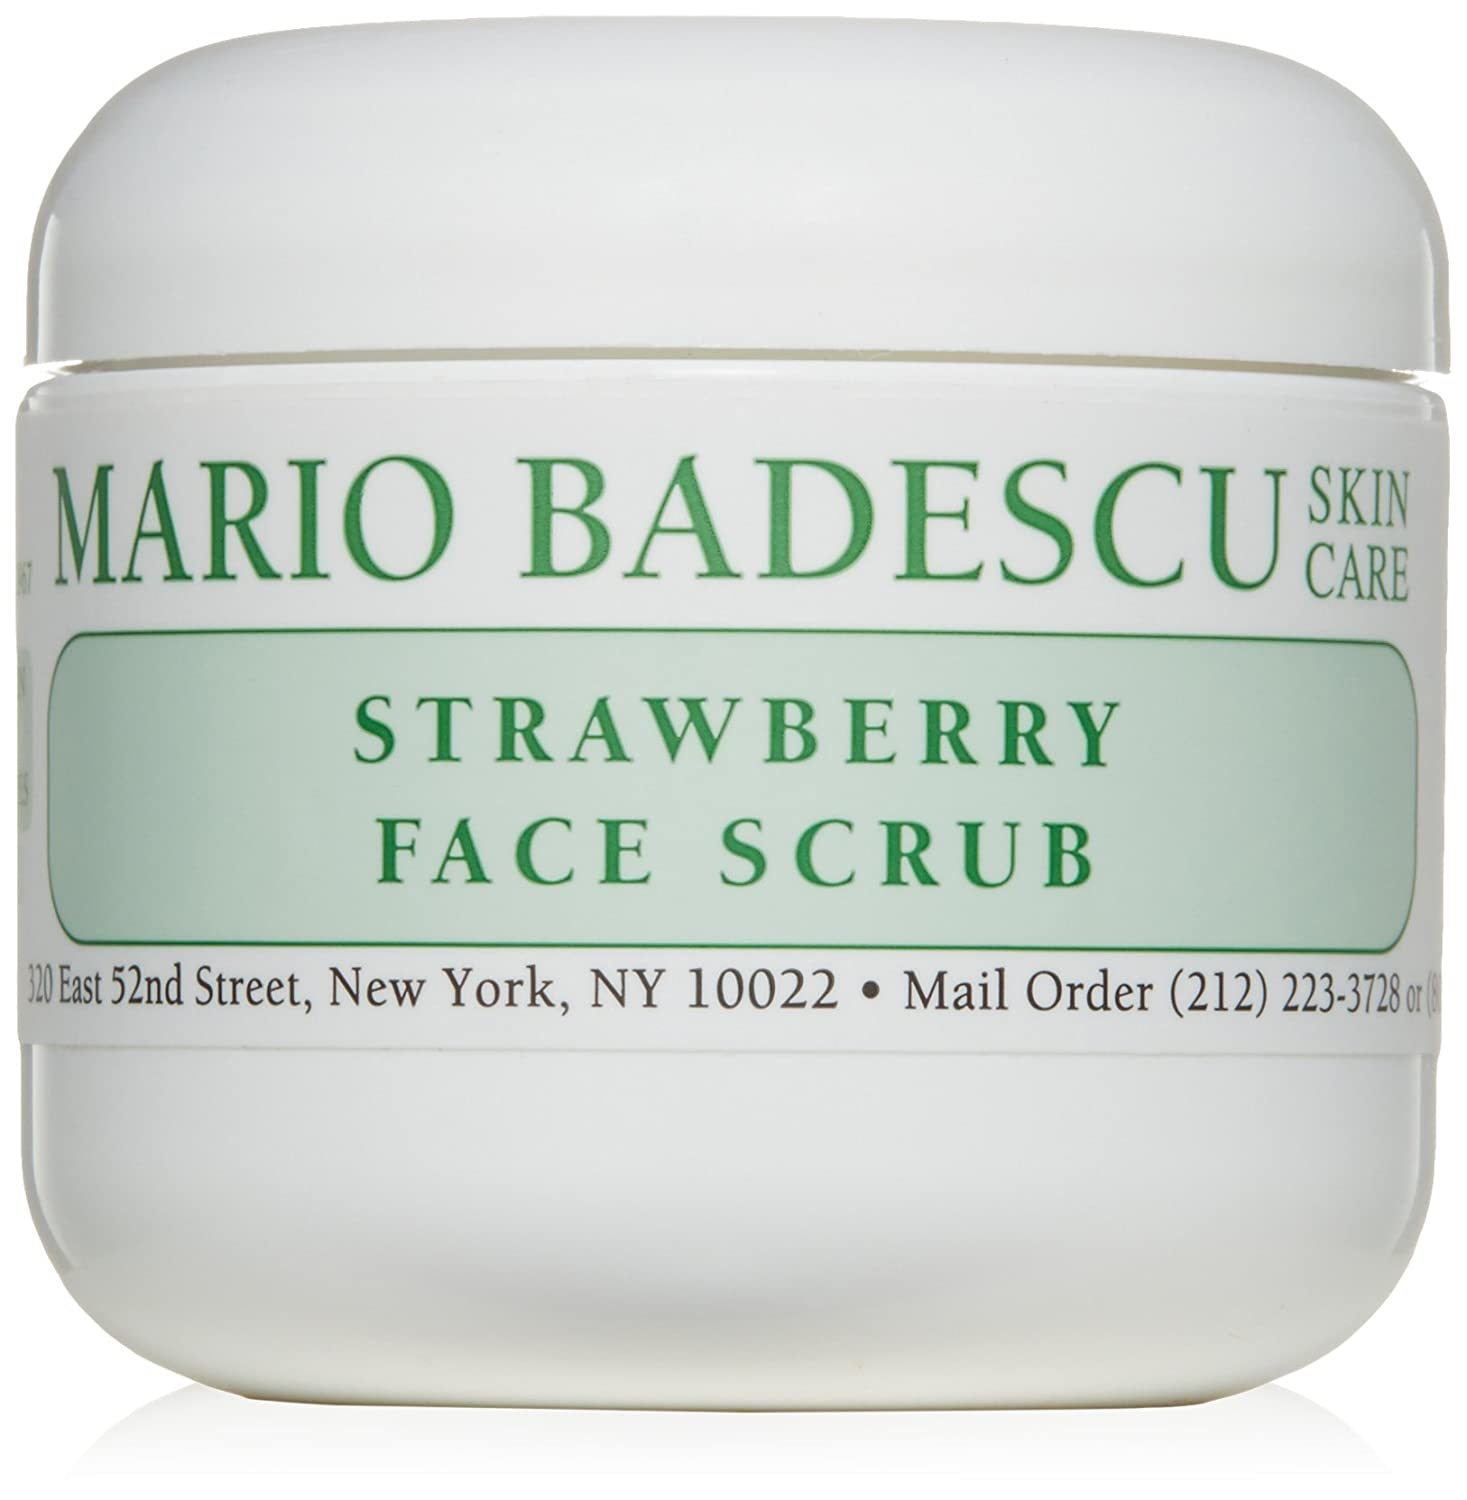 Mario Badescu strawberry face scrub 4oz 7.85E+11